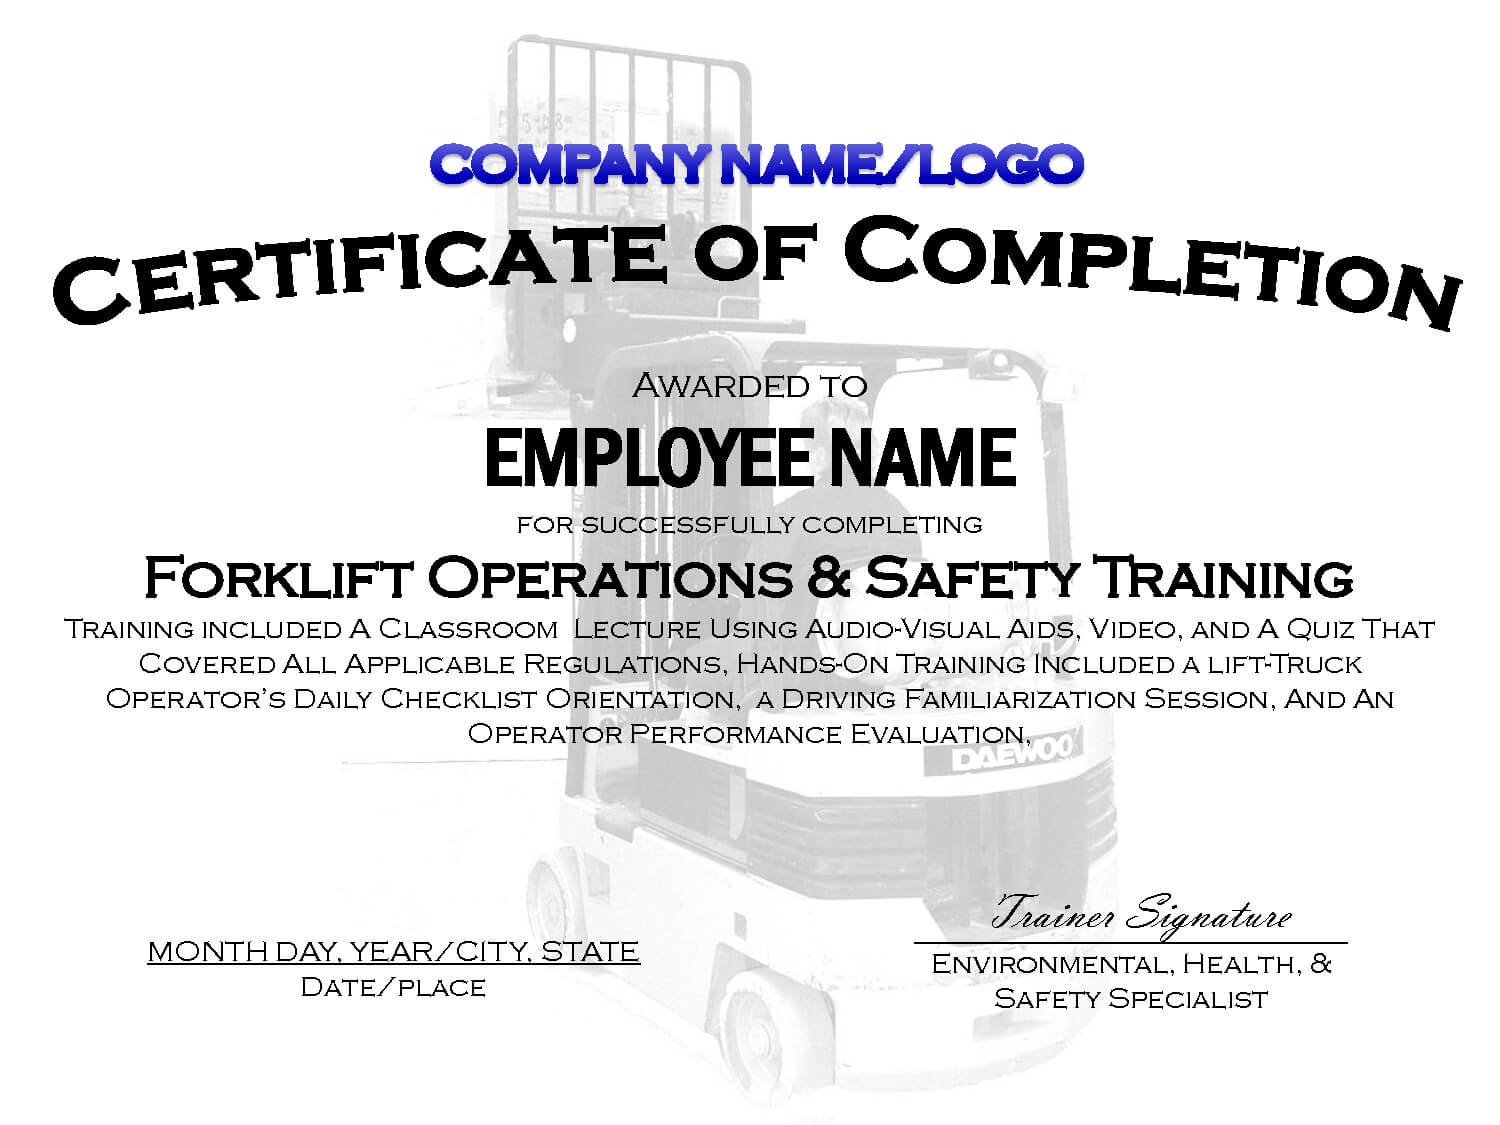 template certification certificate training forklift printable osha safety wallet license truck templates certificates calep midnightpig award lifetime achievement pertaining sybernews